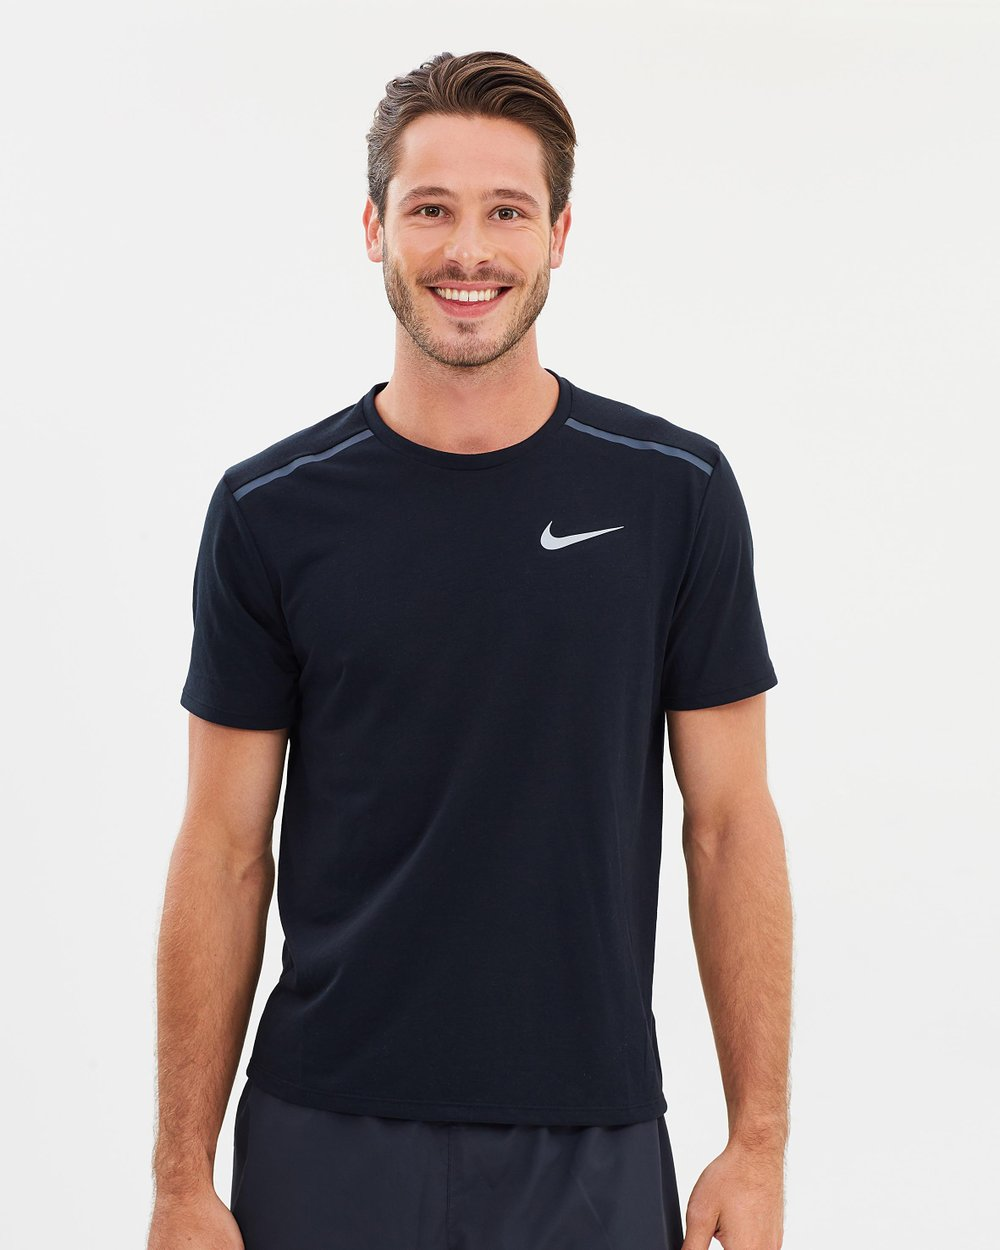 06c2fbac7 Dri-FIT Rise 365 SS Running Top by Nike Online